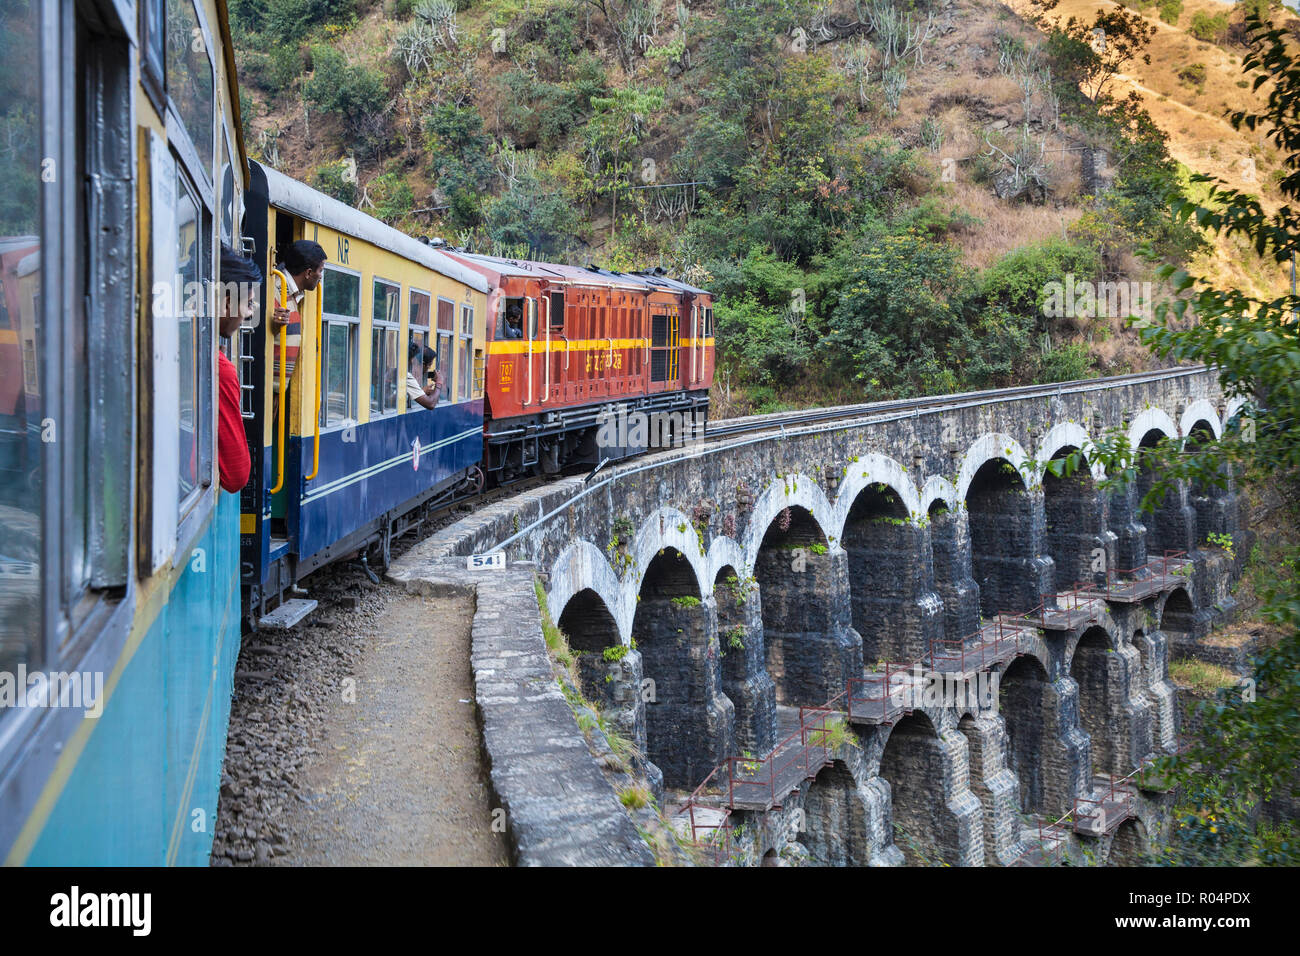 The Himalayan Queen toy train crossing a viaduct, on the Kalka to Shimla Railway, UNESCO World Heritage Site, Northwest India, Asia - Stock Image